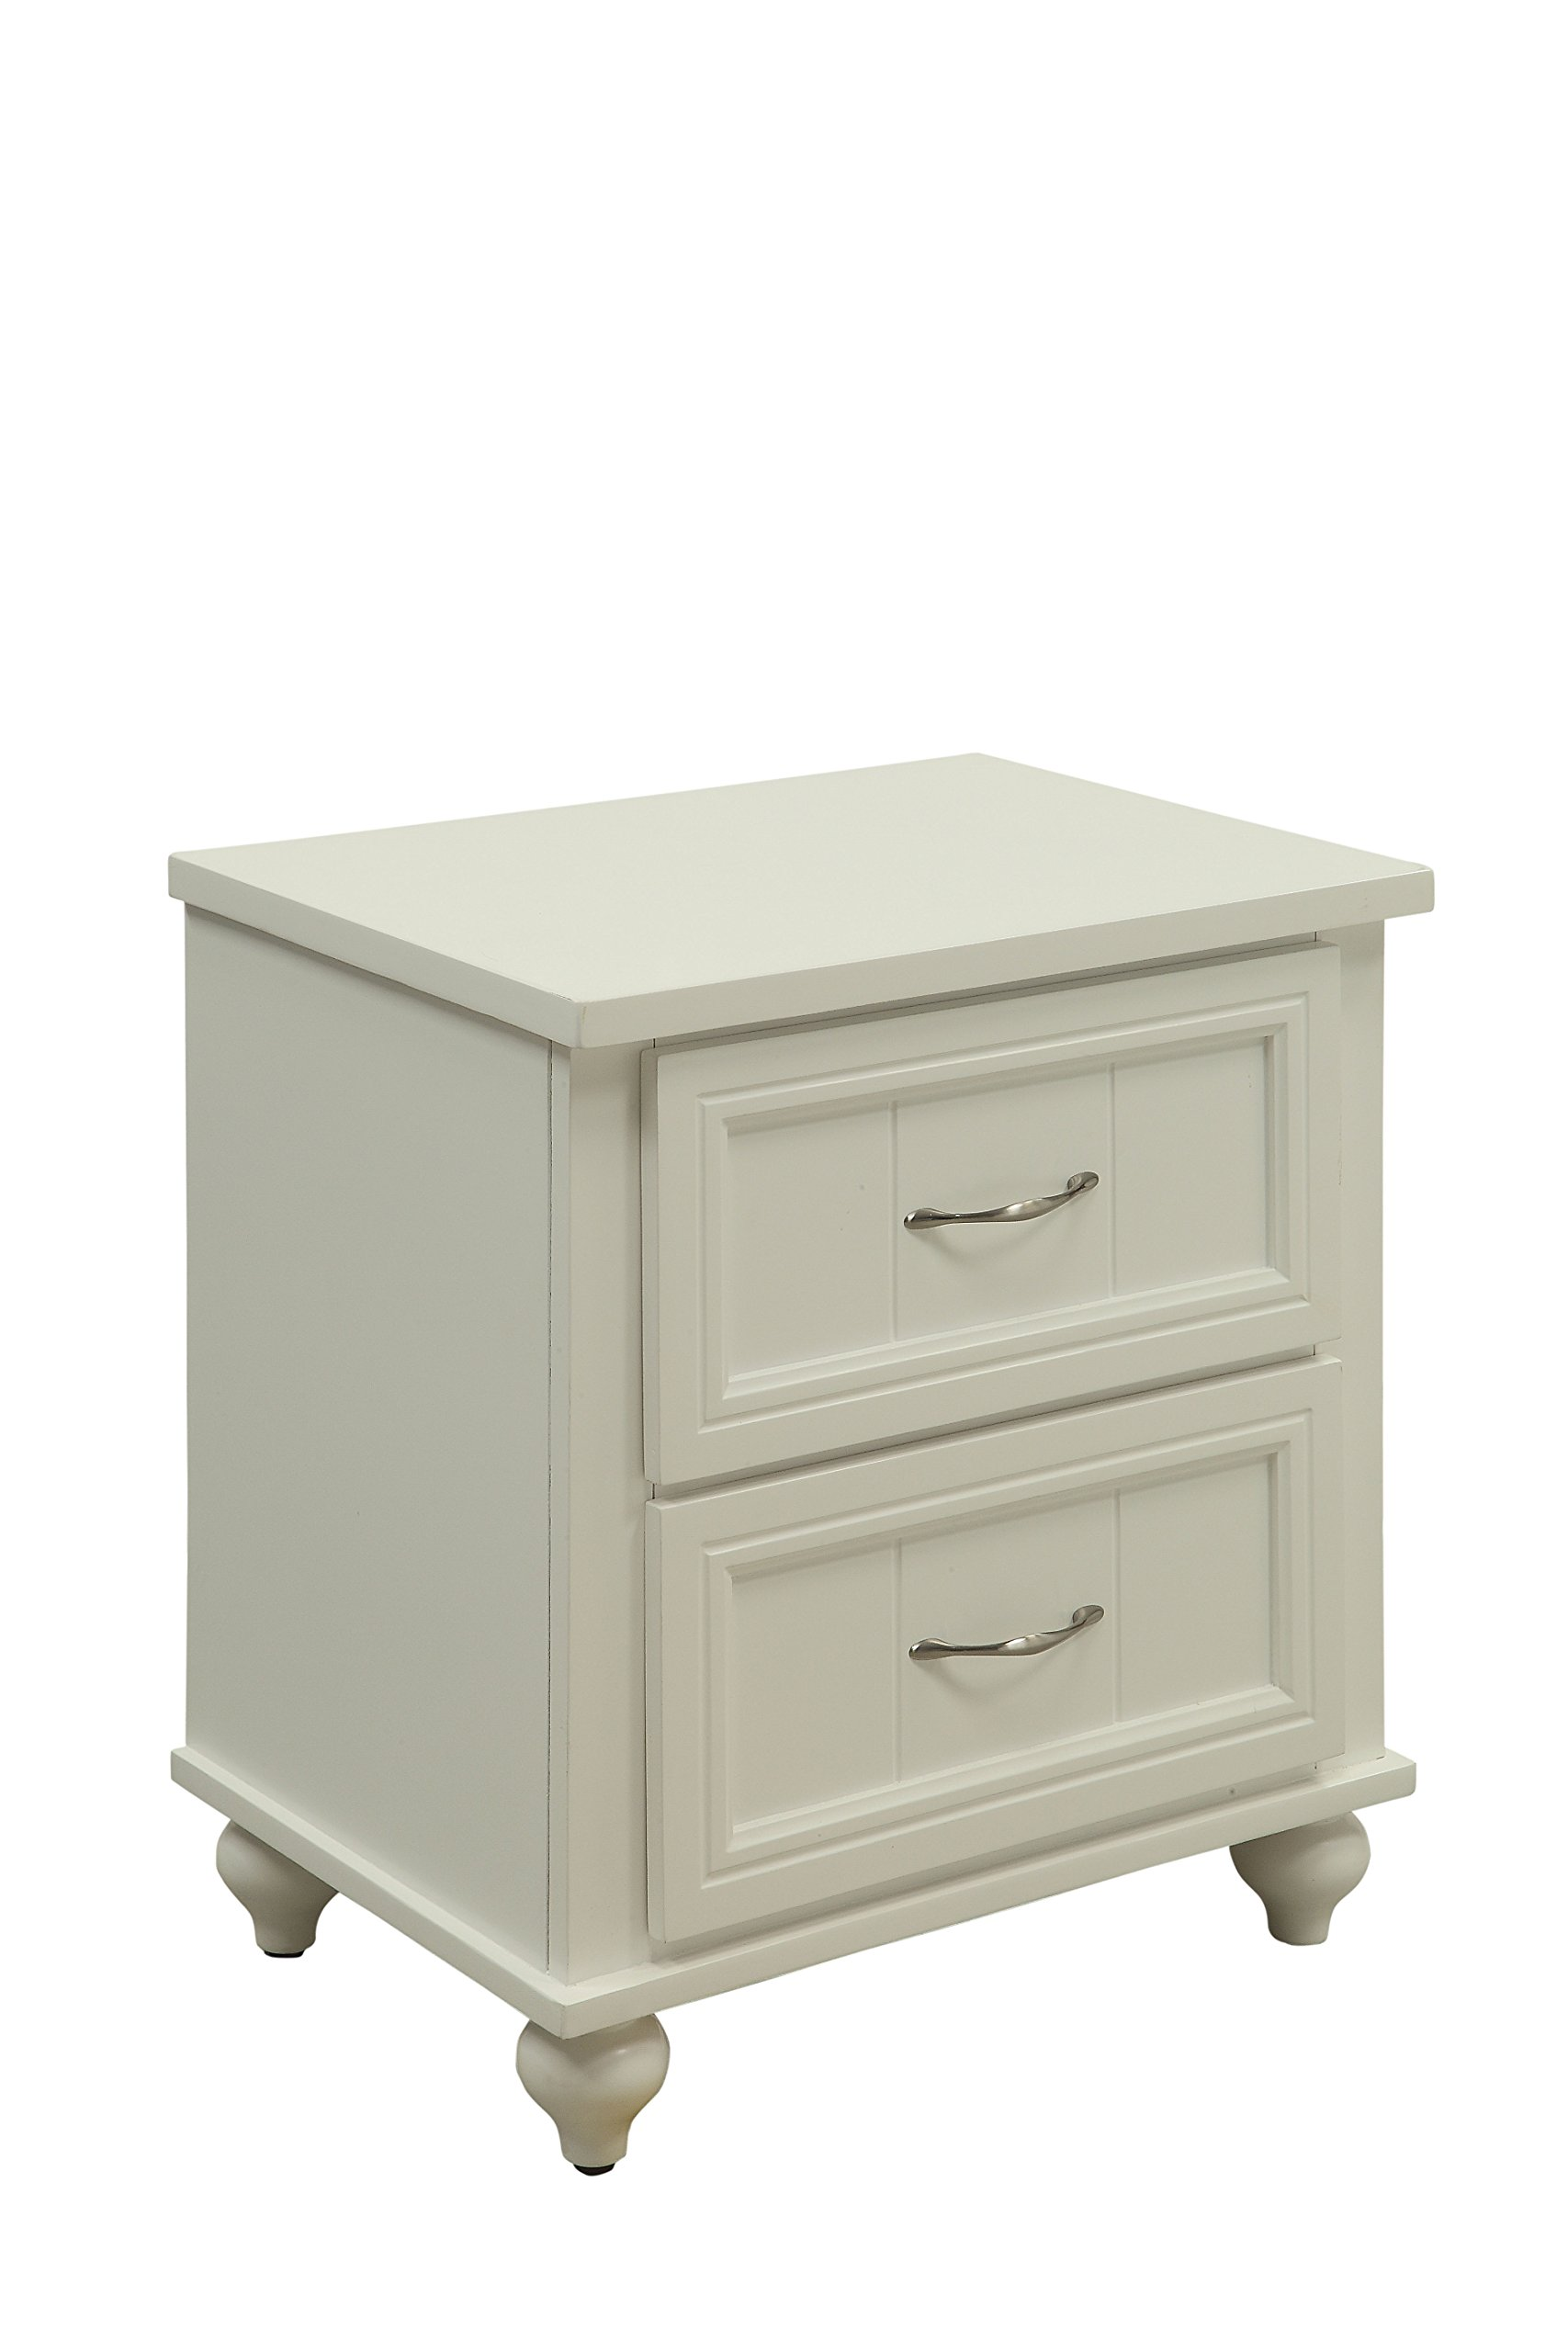 HOMES: Inside + Out Felix Transitional 2-Drawer Nightstand, White